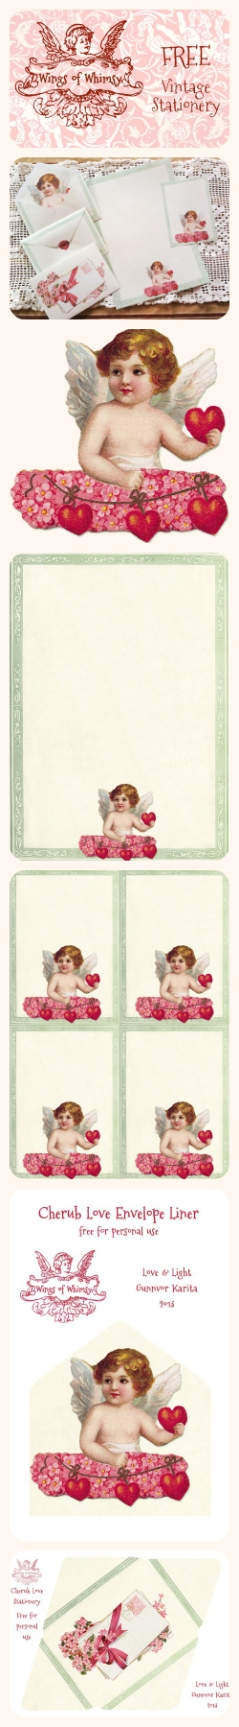 Wings of Whimsy: Cherub Love Stationery Pinfographic